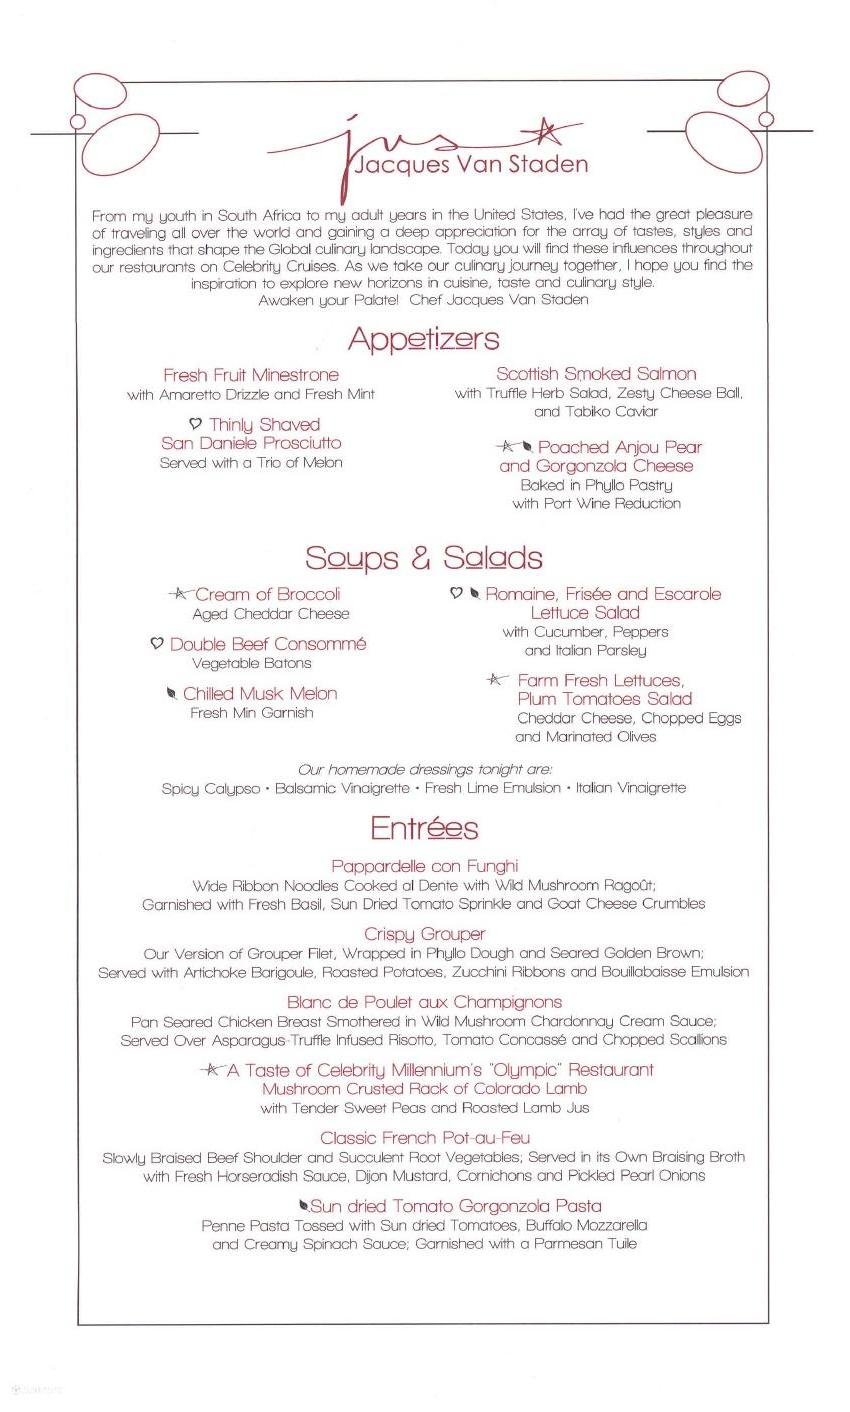 Celebrity Eclipse menu - Moonlight Sonata Main Restaurant